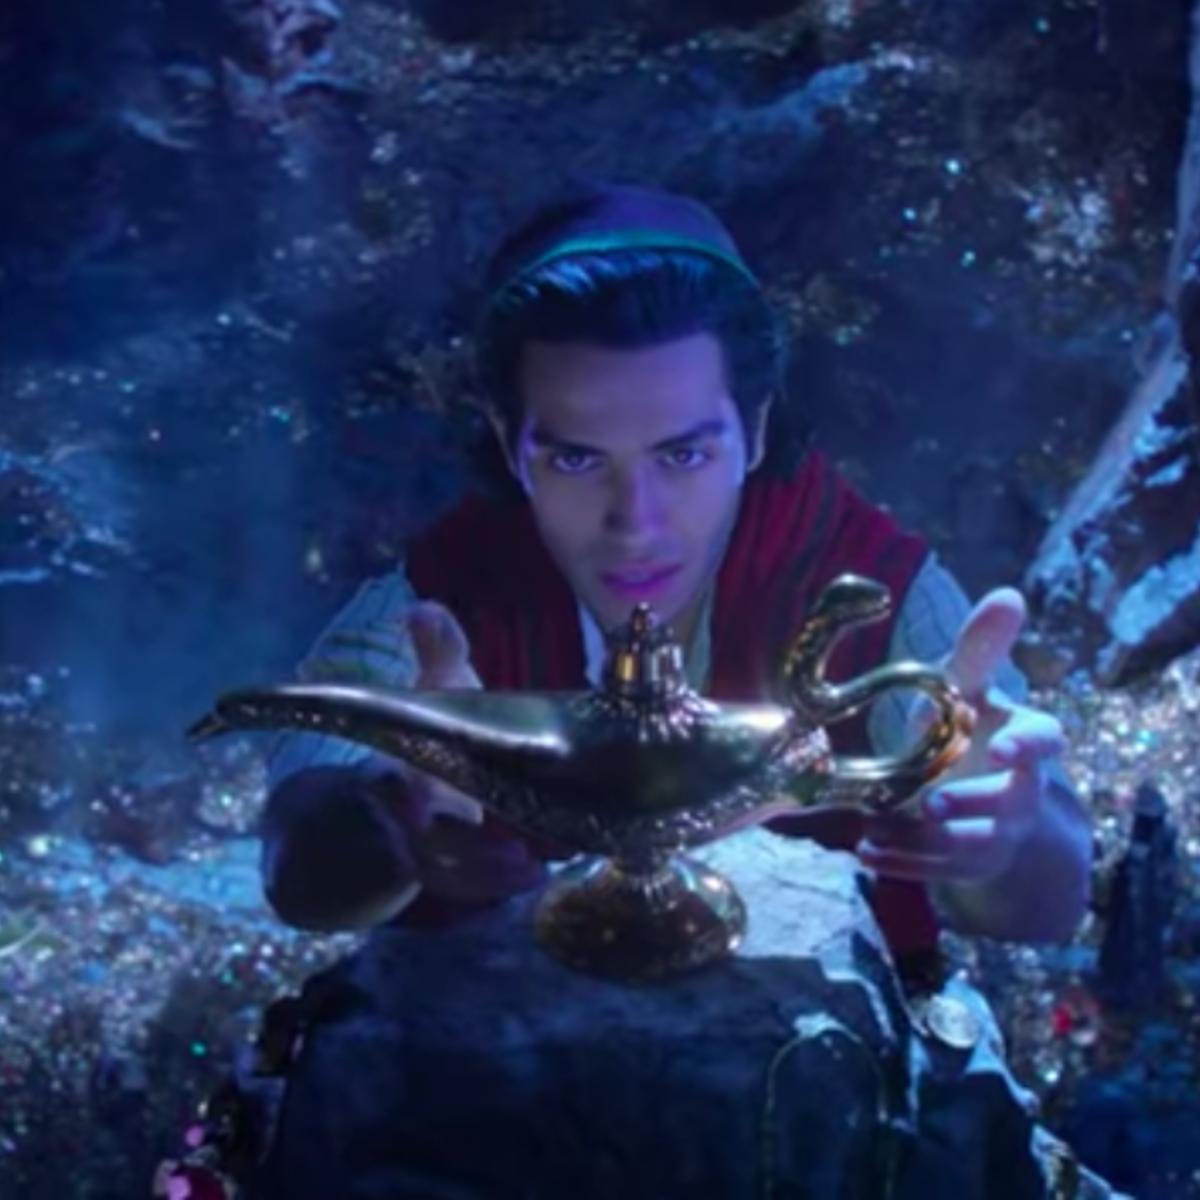 First 'Aladdin' photos show a look at Will Smith as the genie